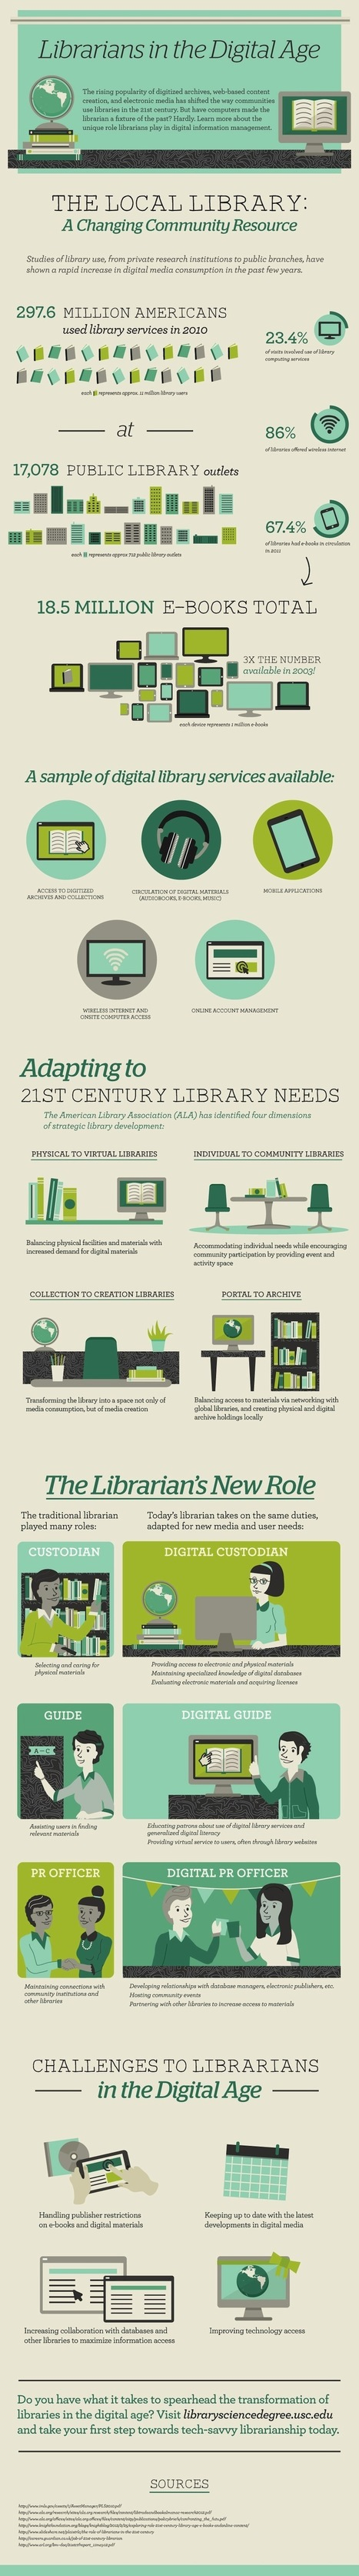 In digital age, librarians are needed more than ever [infographic] | Education Technology | Scoop.it